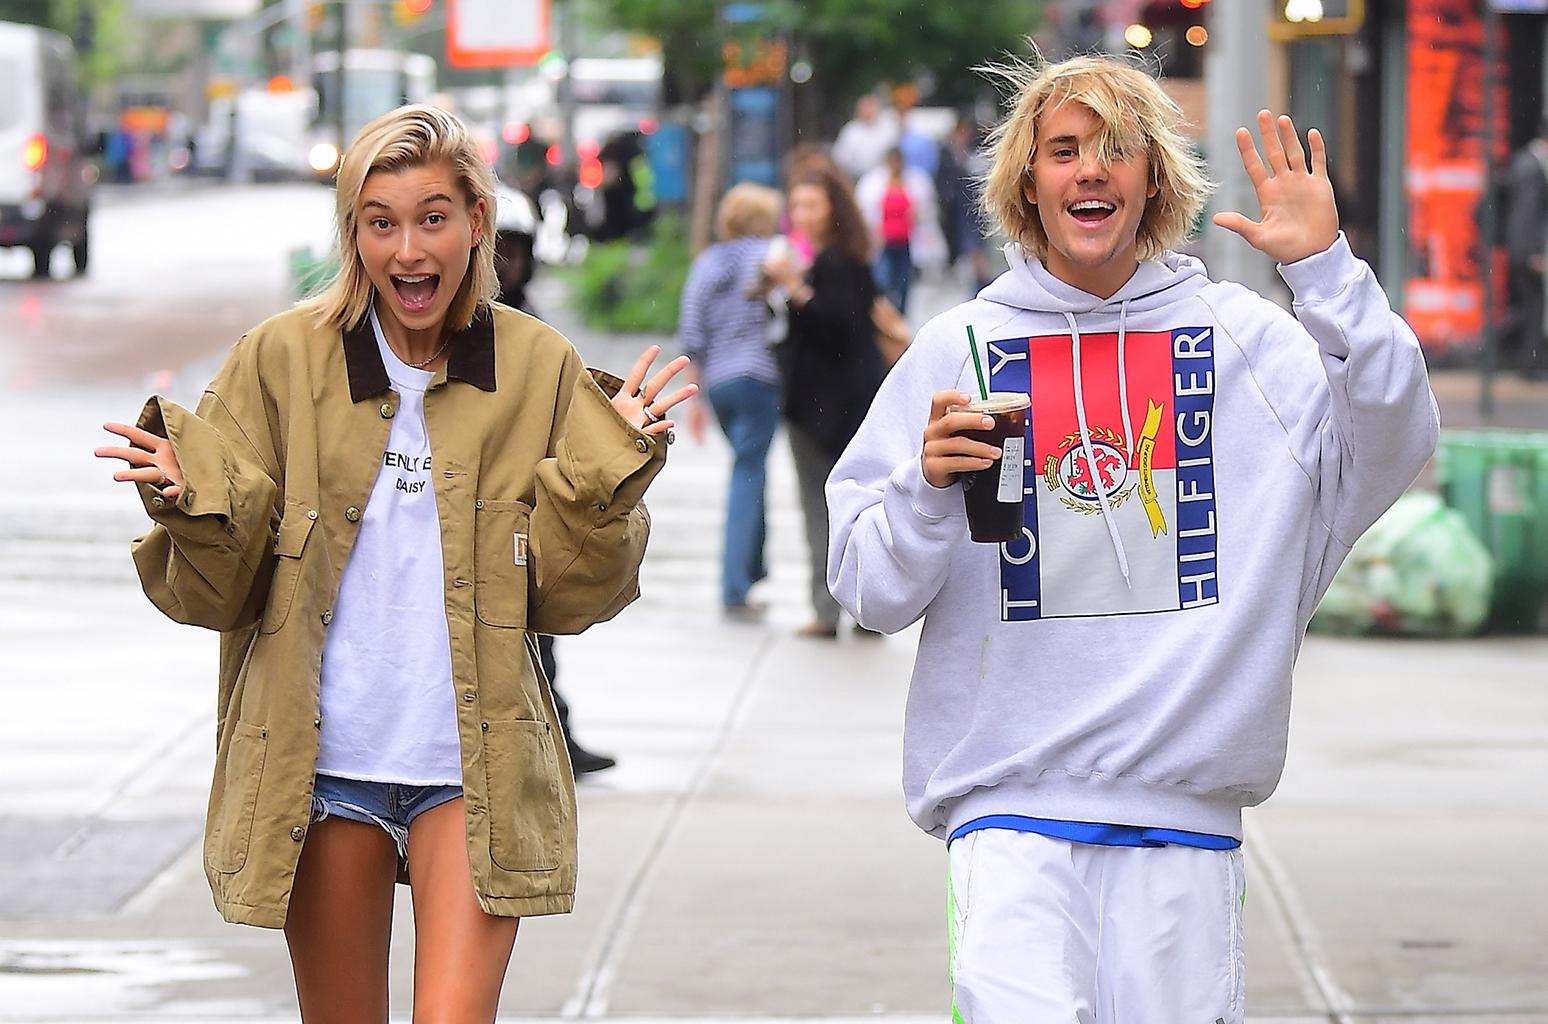 Justin Bieber And Hailey Baldwin's Relationship Reportedly Still Like A 'Magical' Honeymoon A Year After Tying The Knot